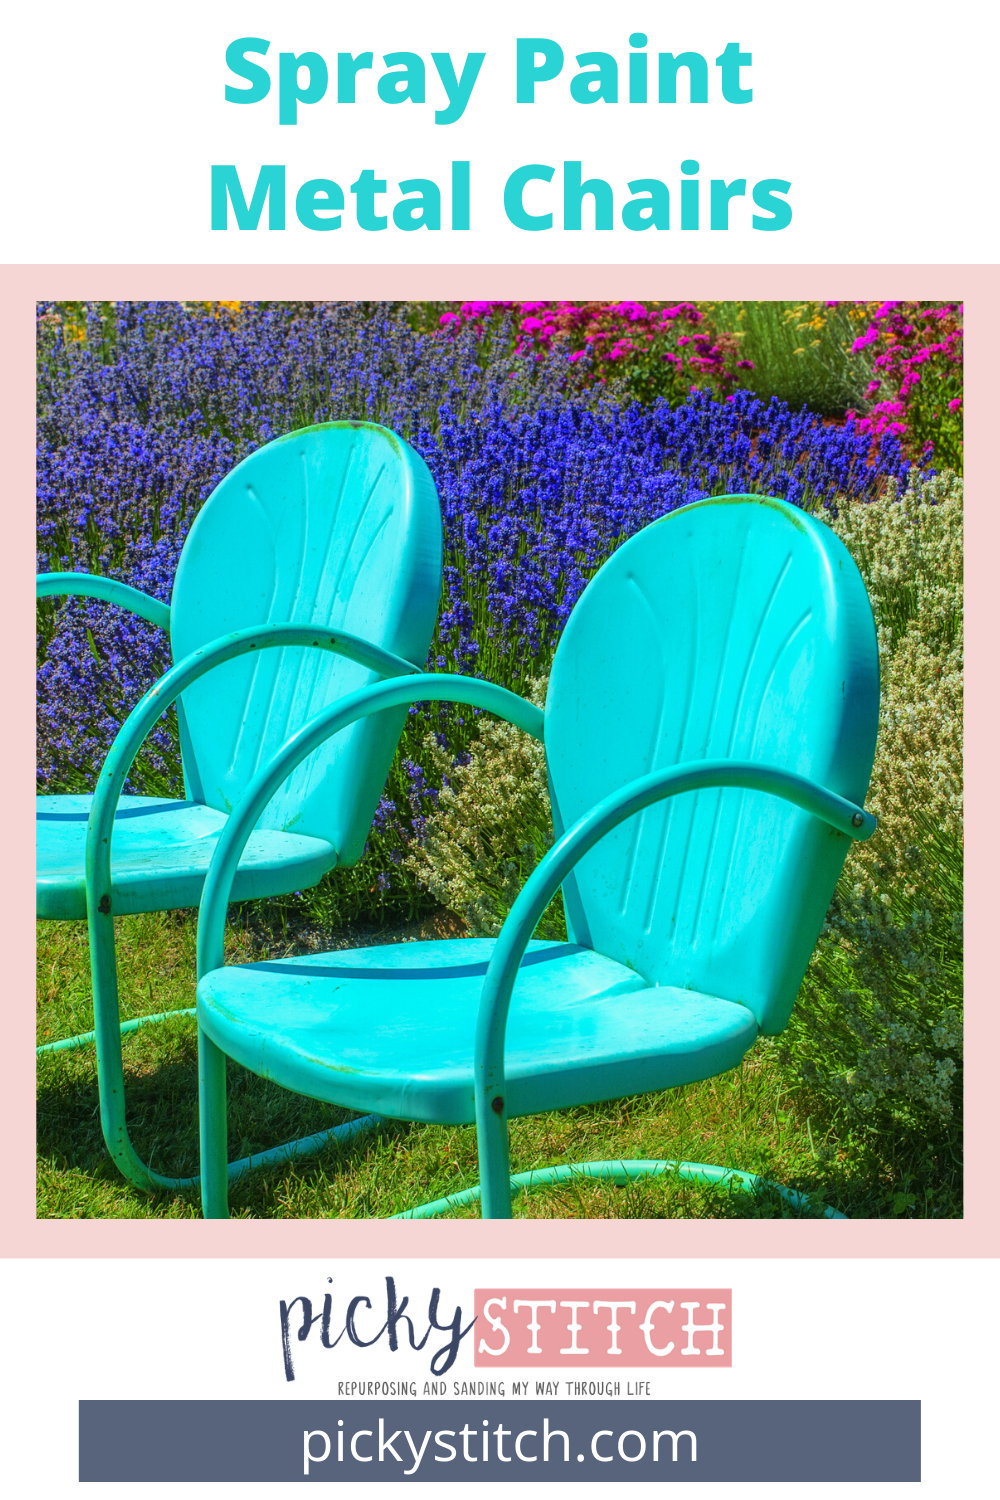 Follow these 6 easy steps and you will have beautiful like-new metal chairs! It's like buying new ones except these are actually the color you want! Follow along and I will show you how to paint metal chairs the easy way! #paintedmetalchairs #howtopaintmetalchairs